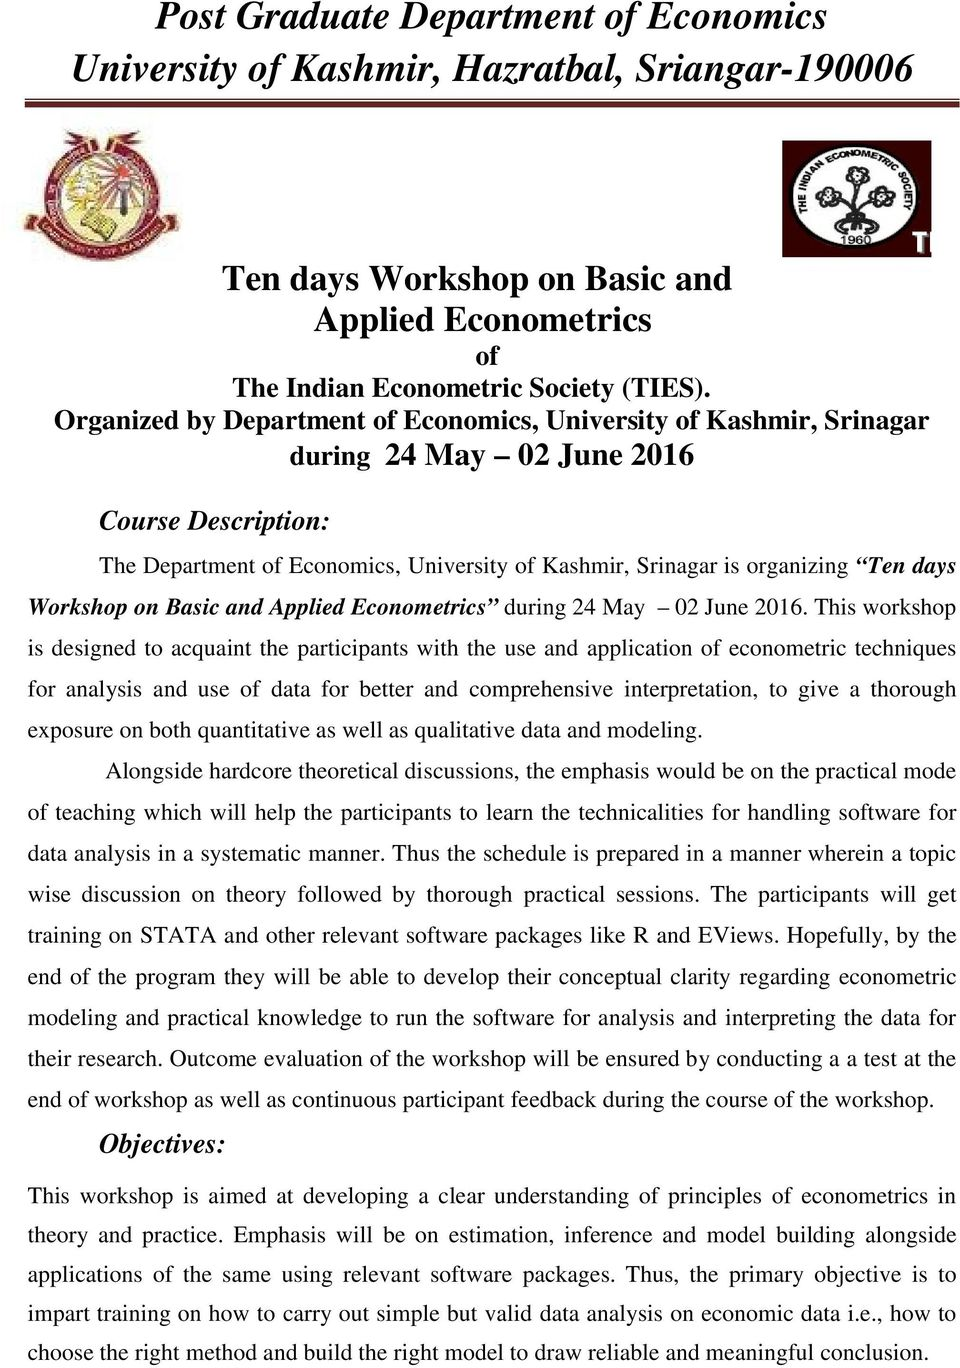 days Workshop on Basic and Applied Econometrics during 24 May 02 June 2016.